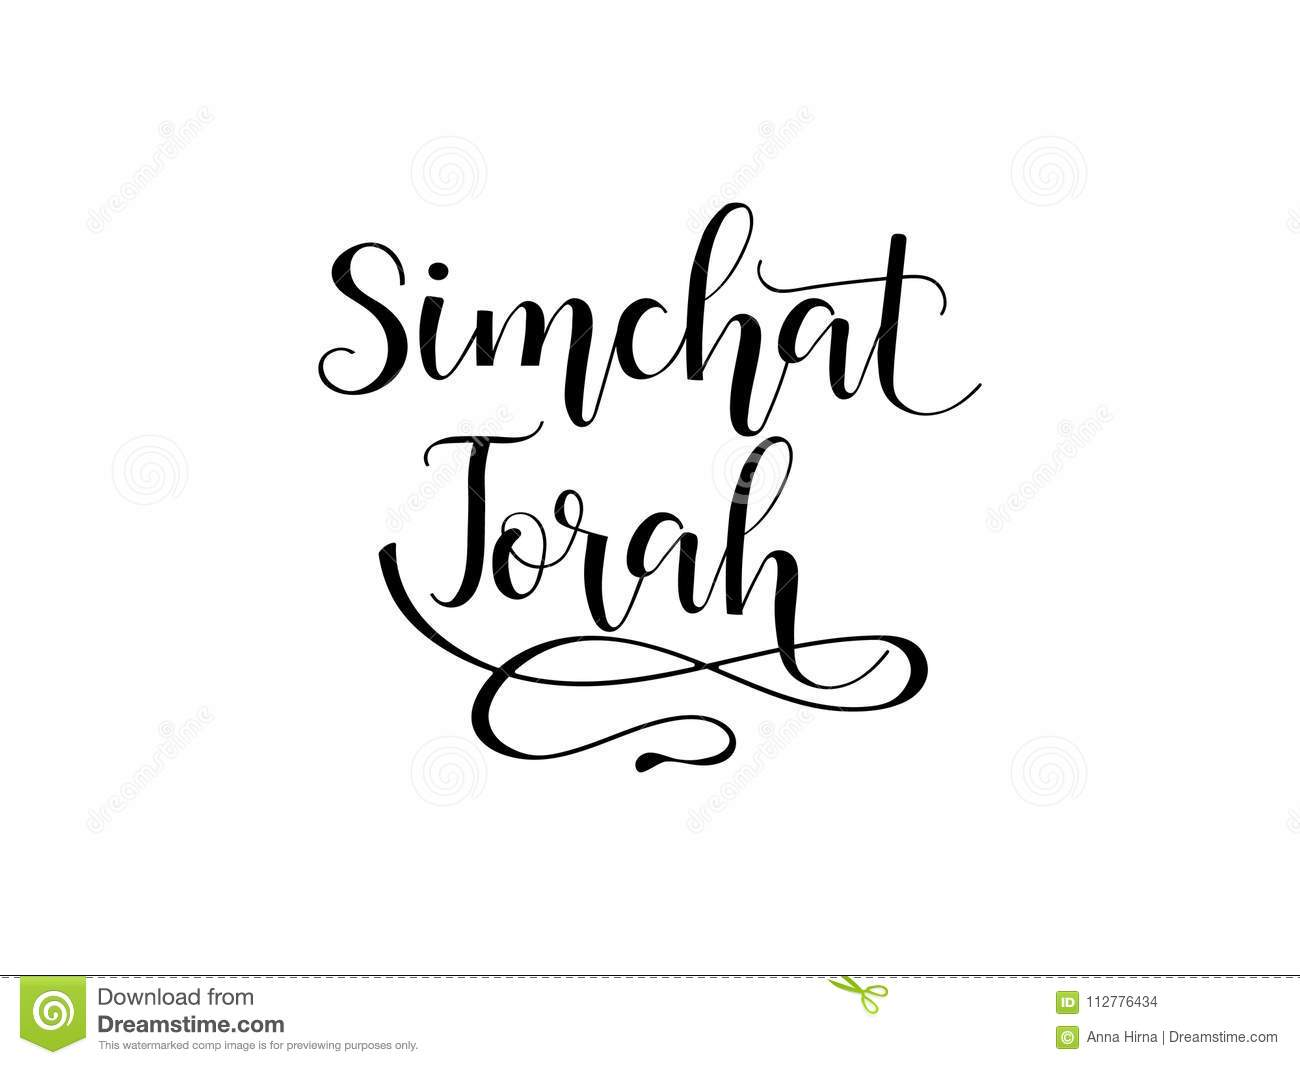 Simchat Torah Lettering Vector Calligraphy Typography Poster